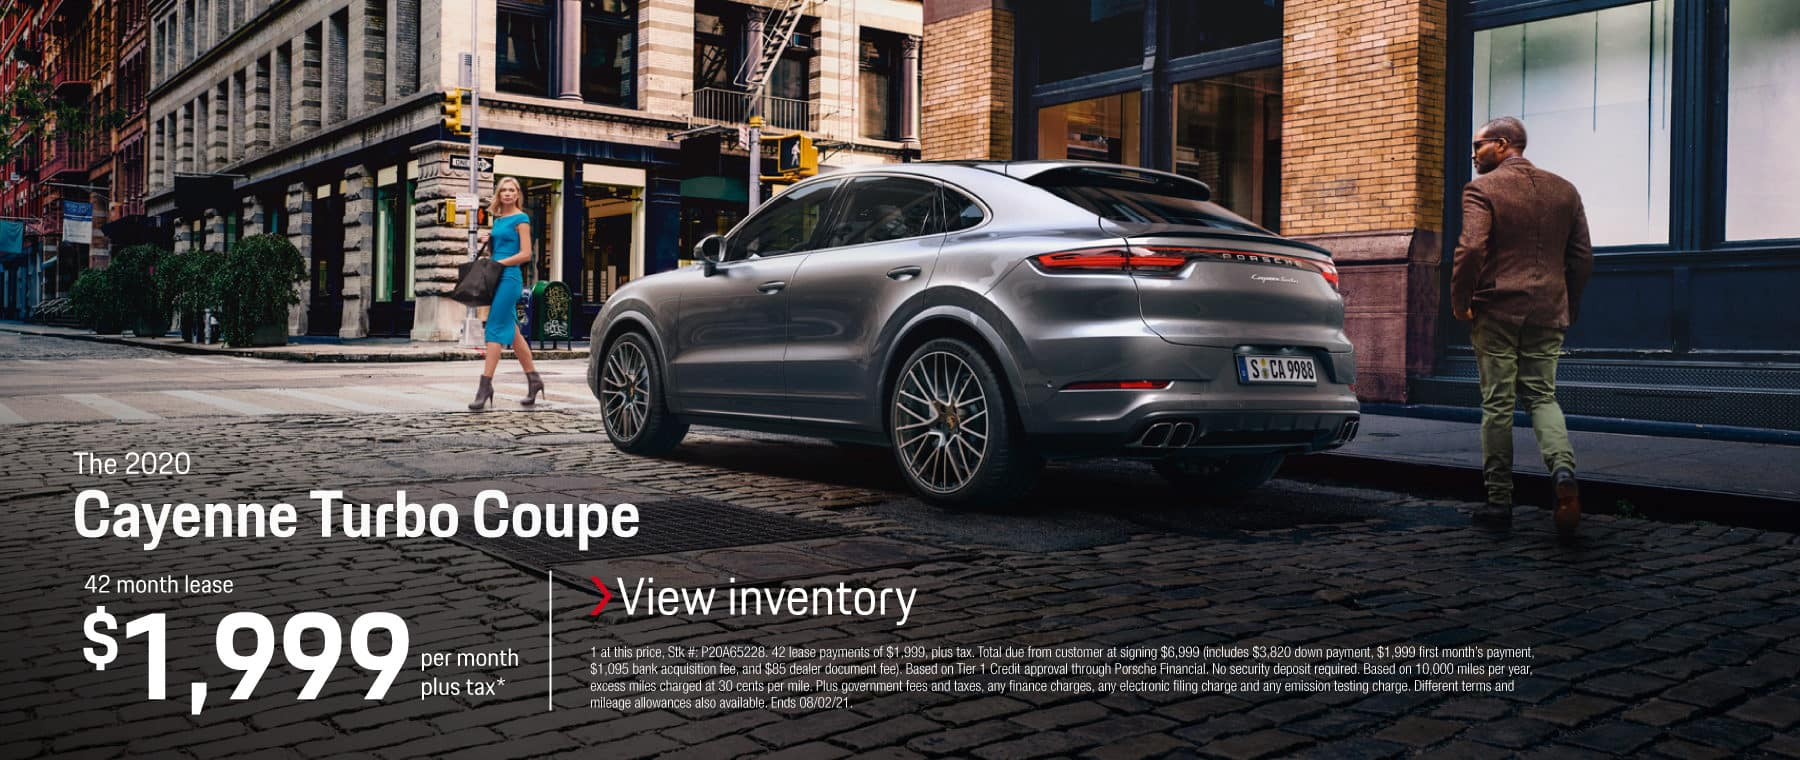 2020 Cayenne Turbo Coupe